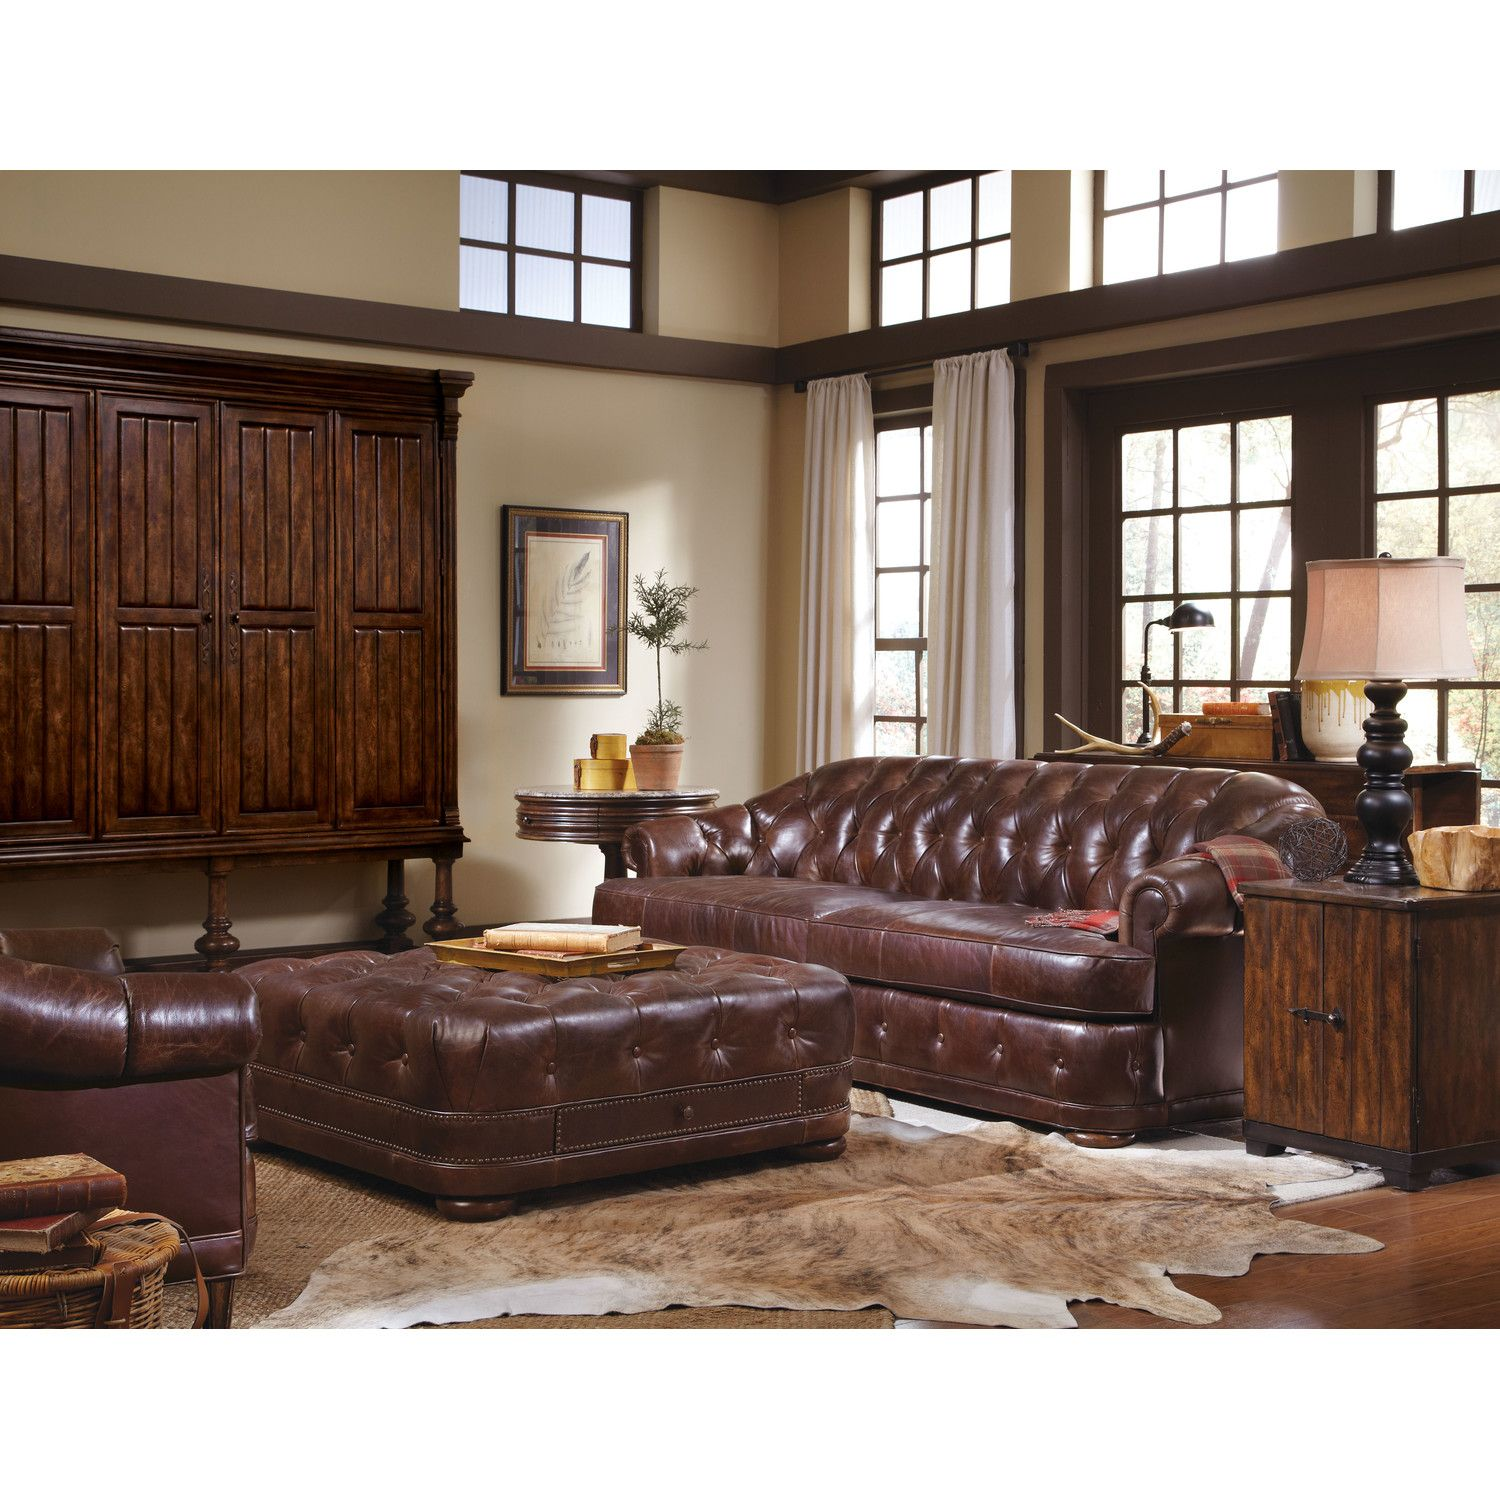 Best A R T Kennedy Chesterfield Leather Sofa Chesterfield 640 x 480